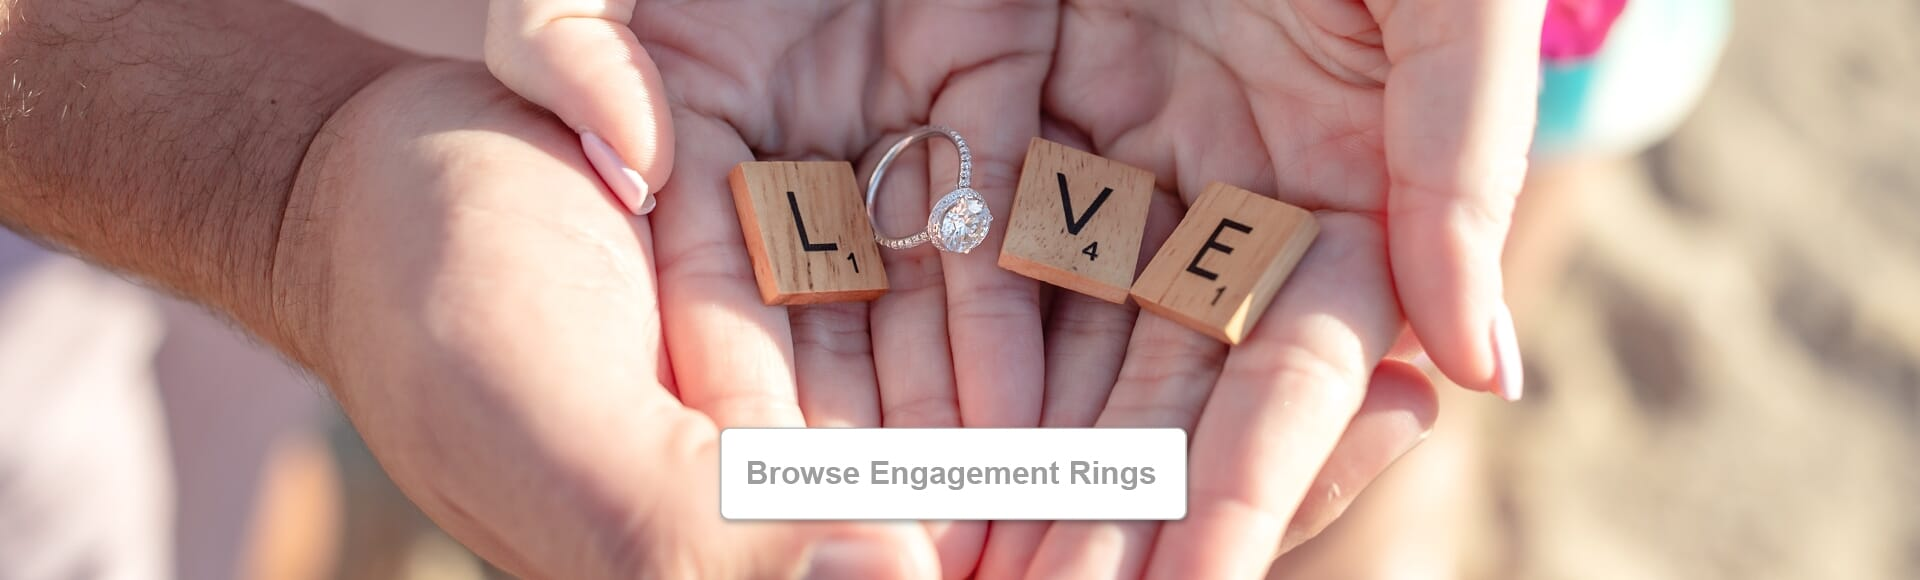 Hands hold engagement ring and scrabble pieces